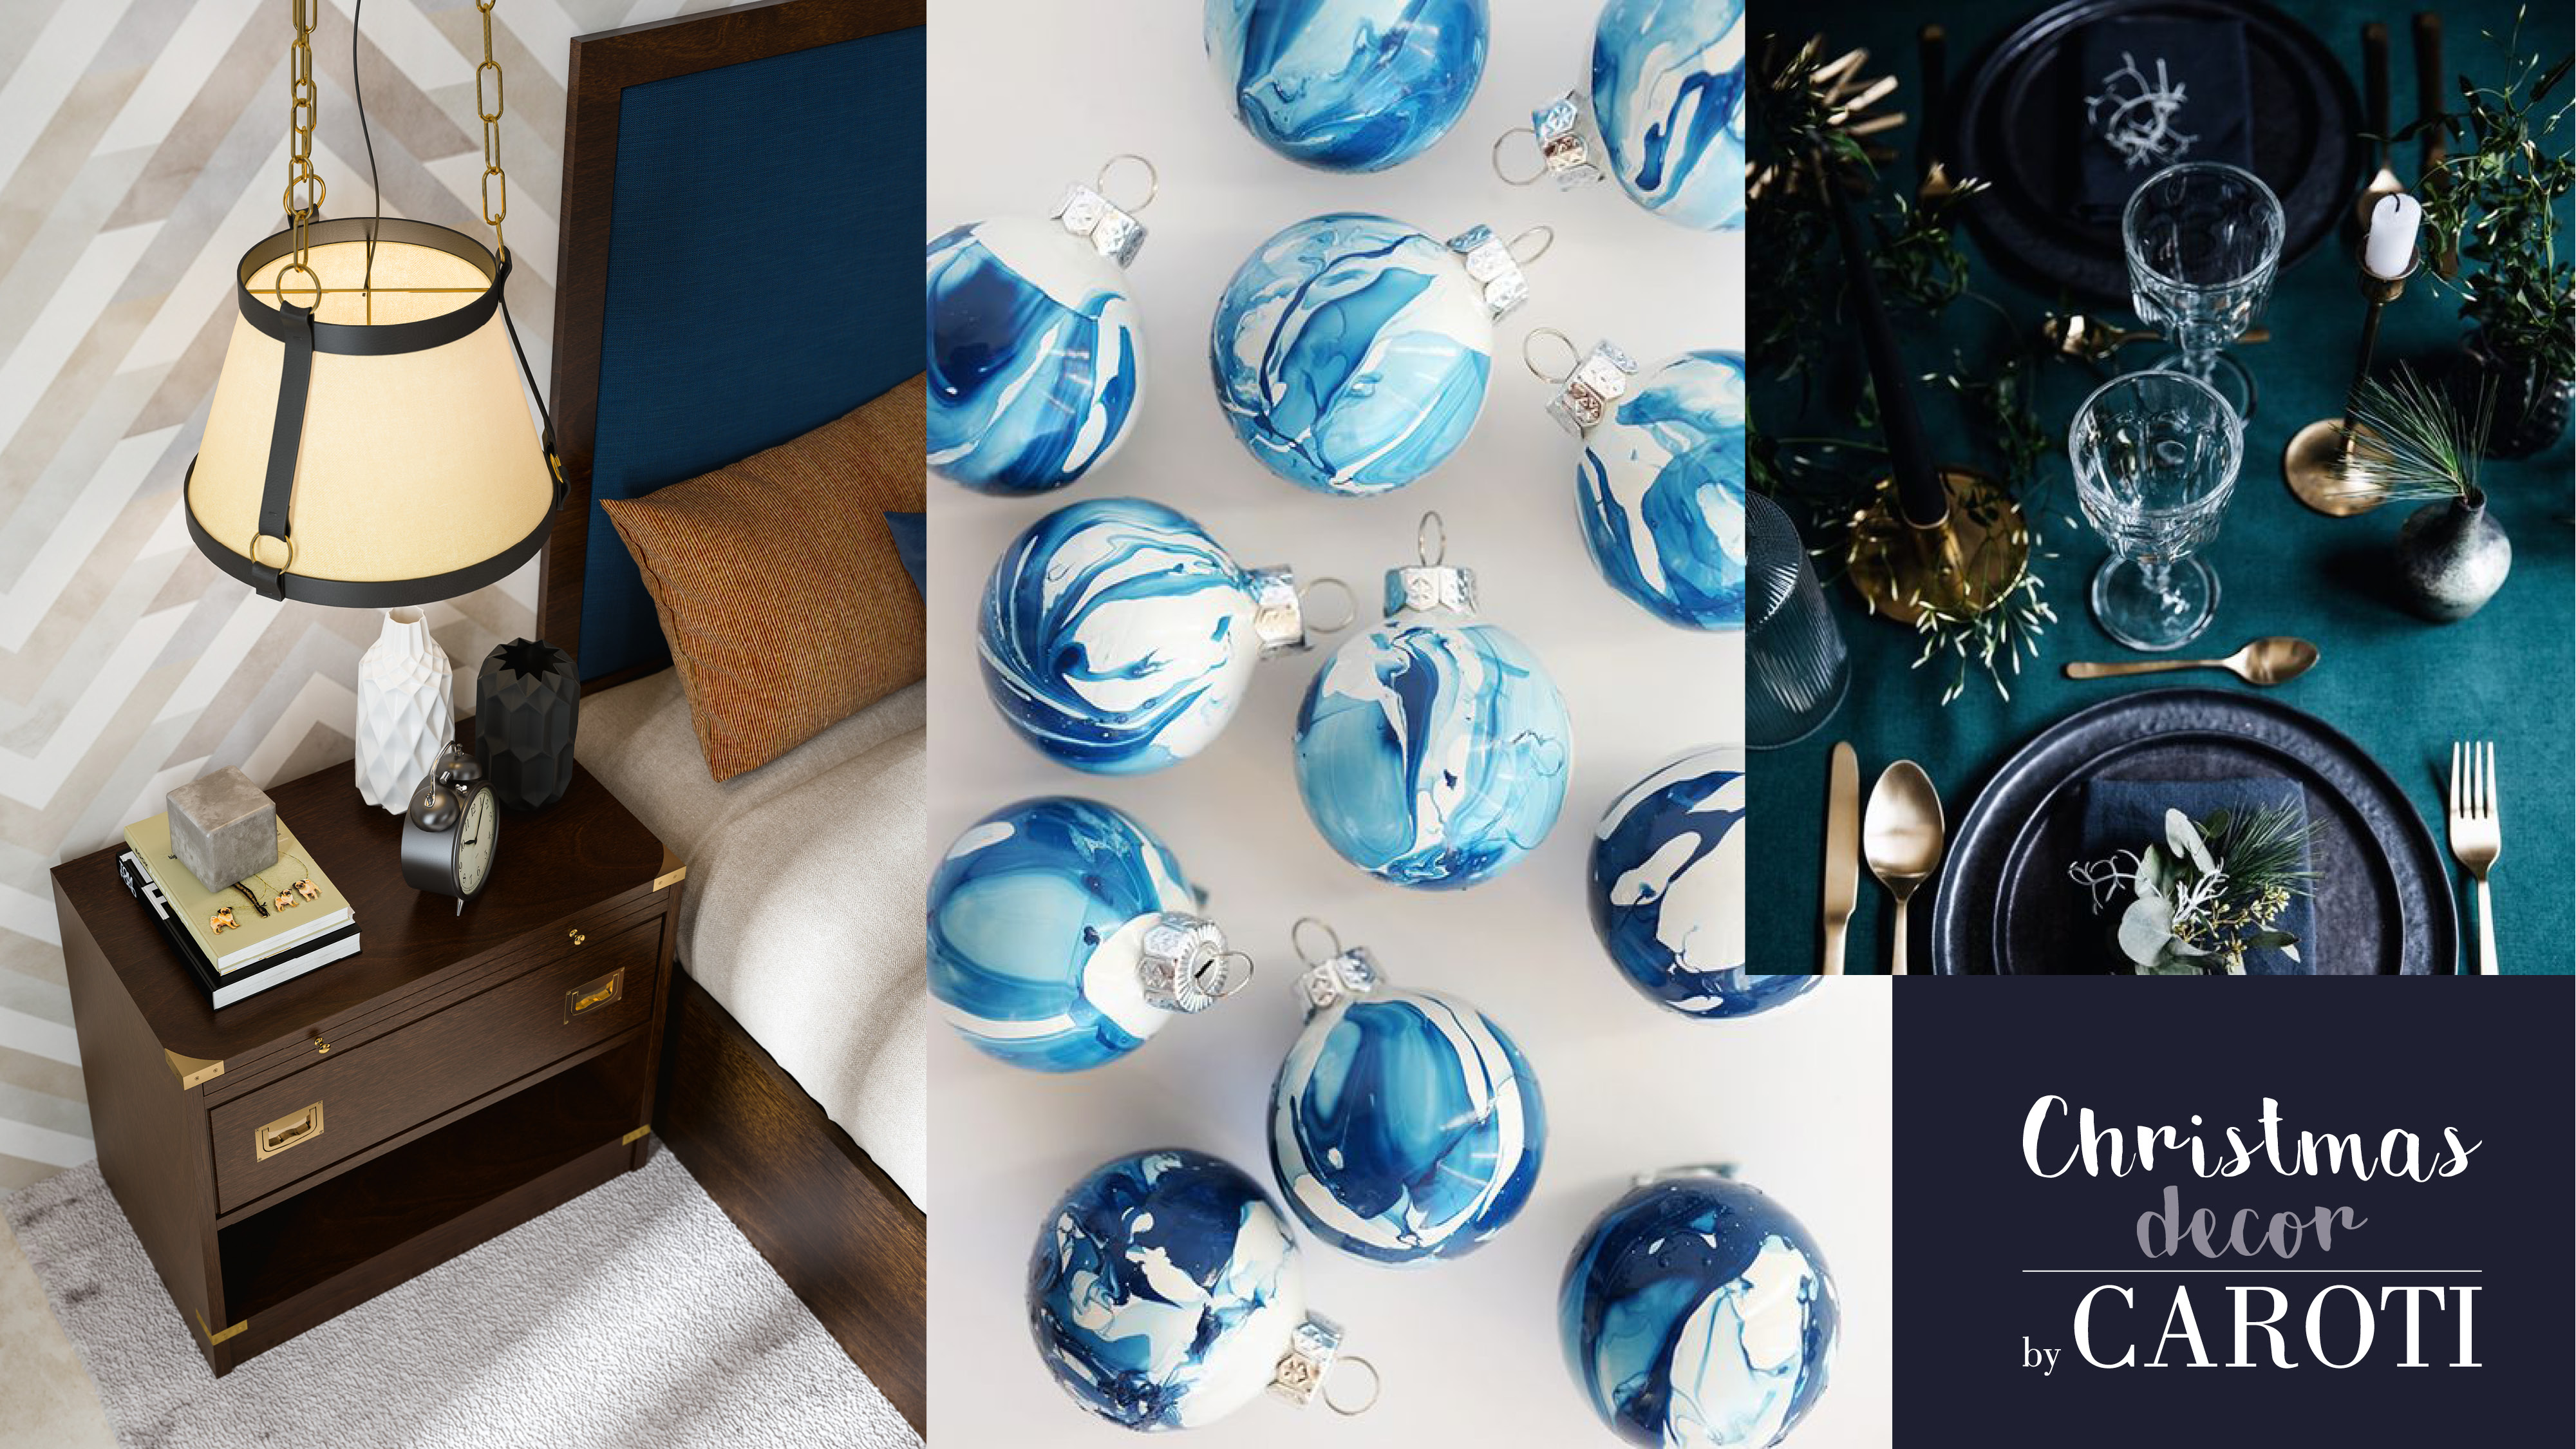 christmas decor tips by caroti in glam style #1